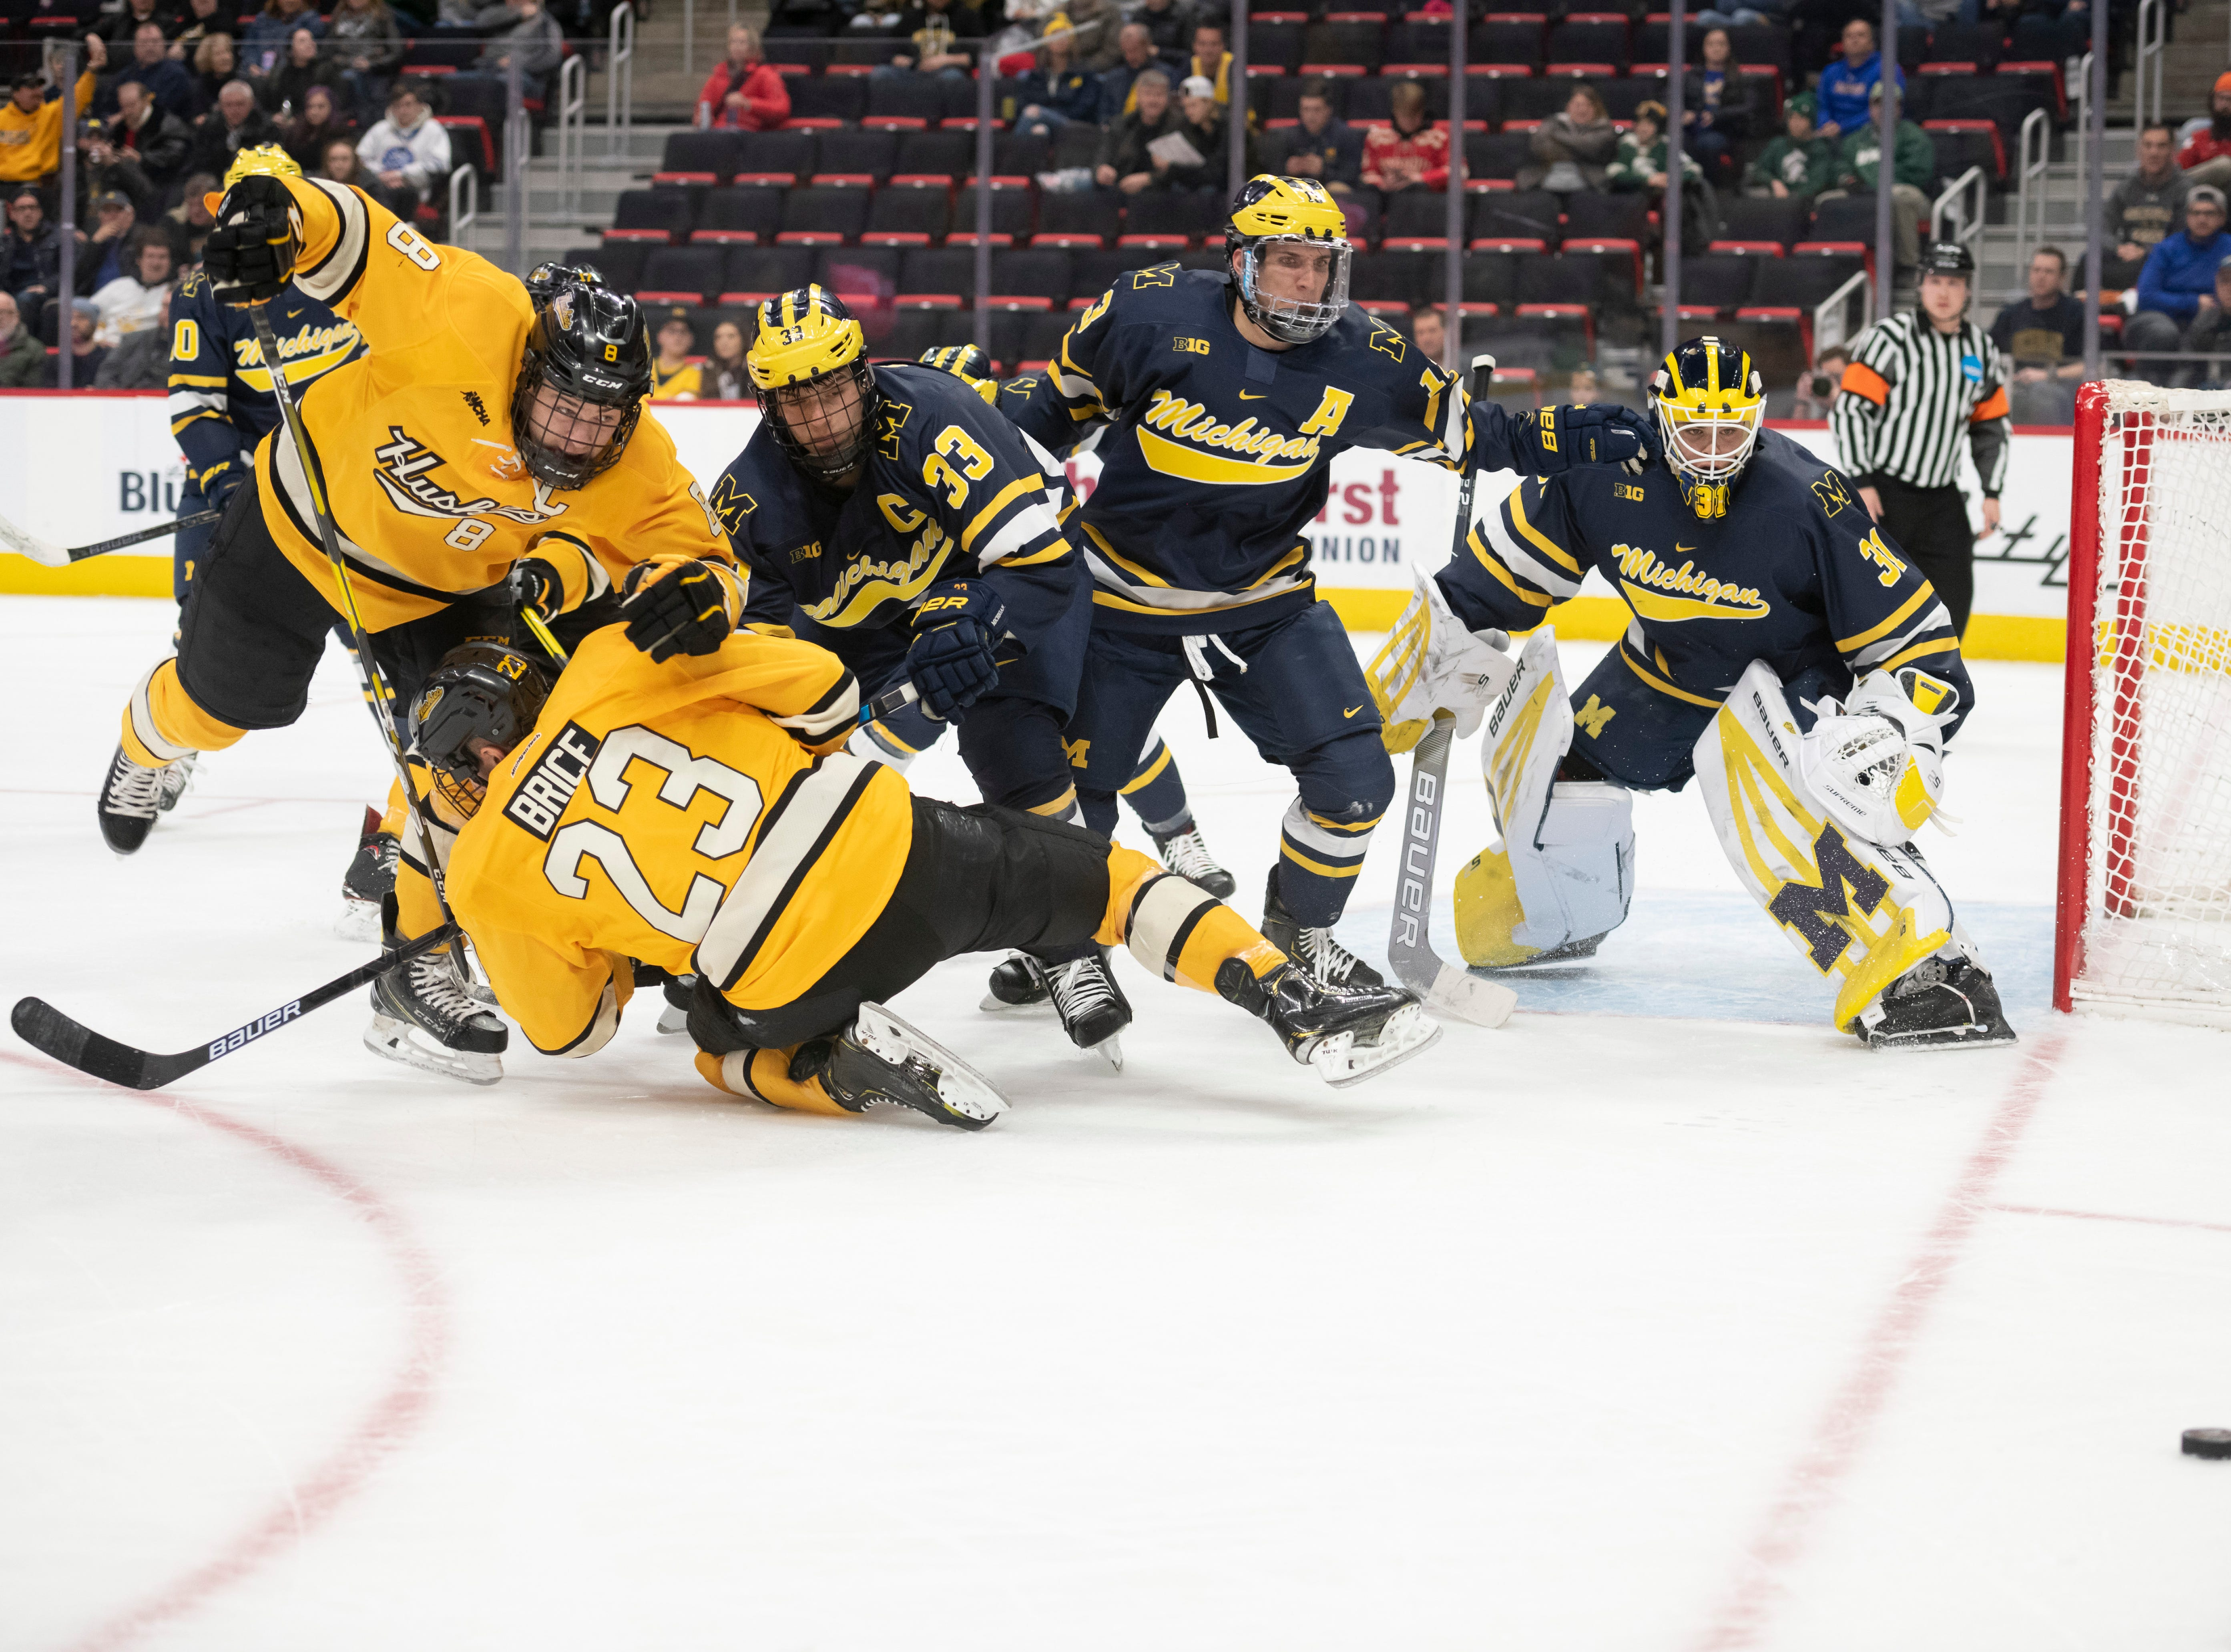 The two teams battle for the puck in front of Michigan's net in the first period.